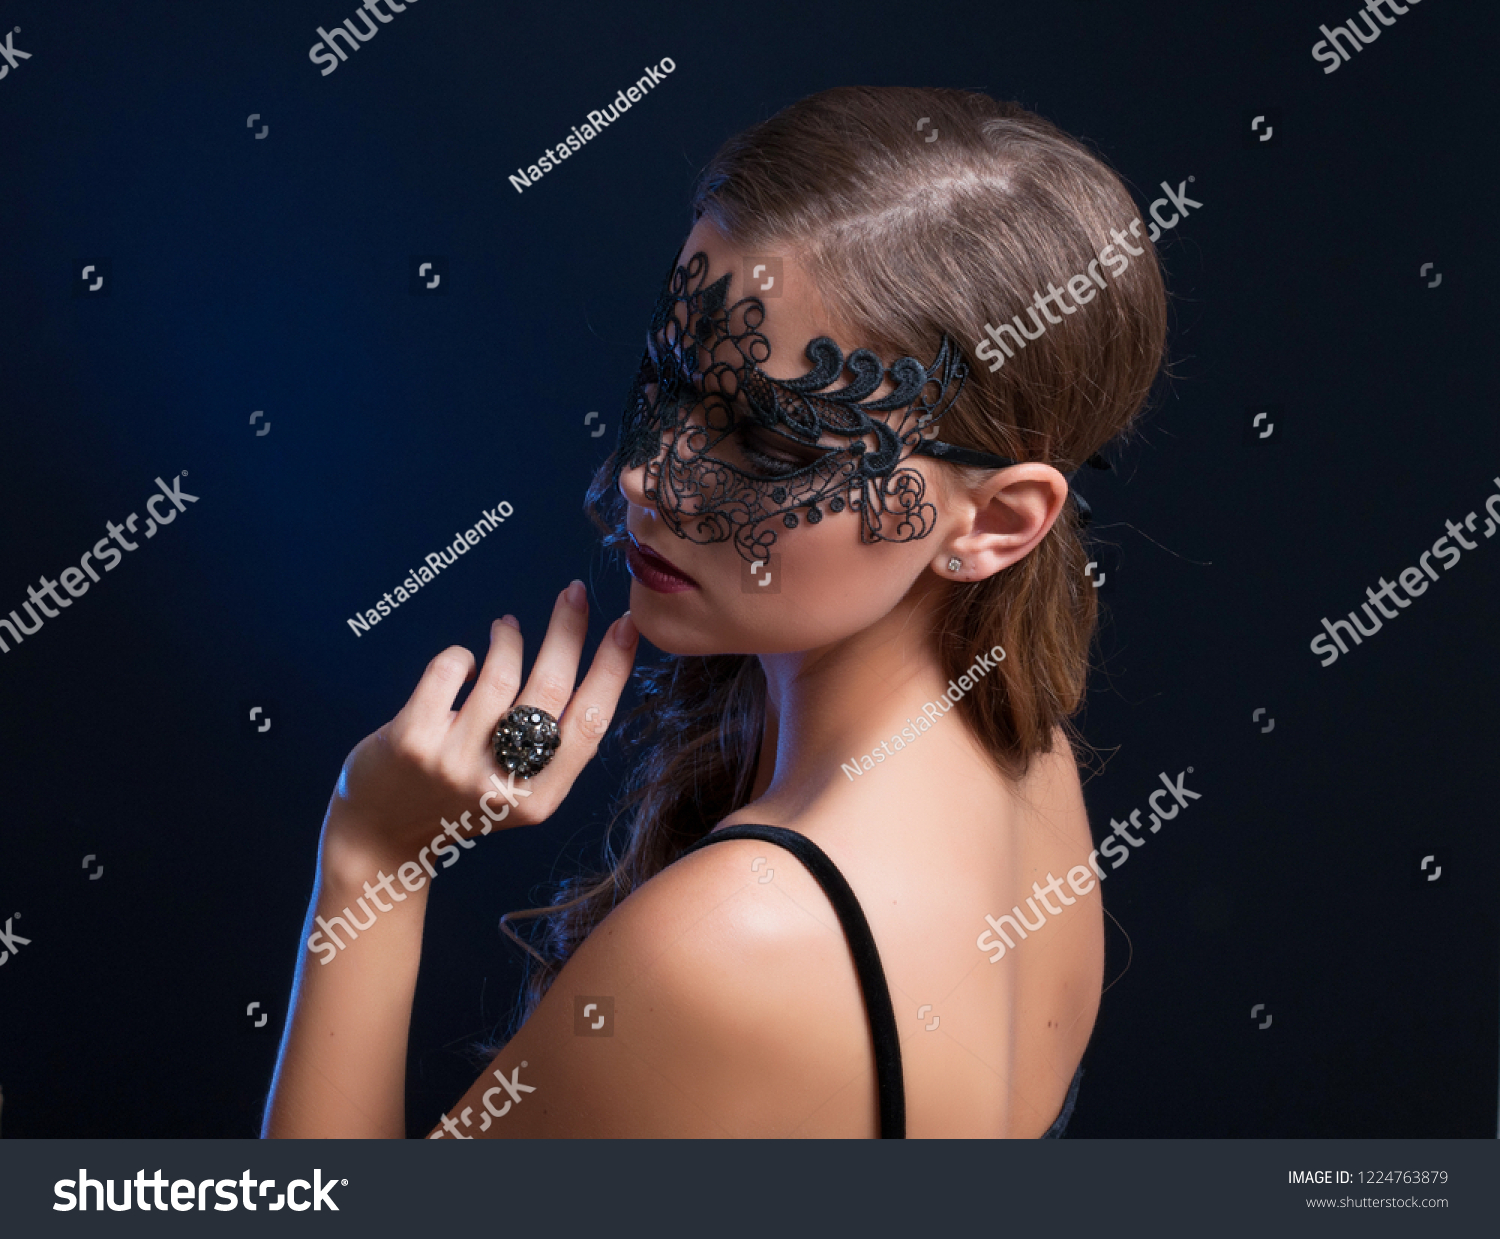 Portrait of young beautiful sexy woman with erotic style black lace mask